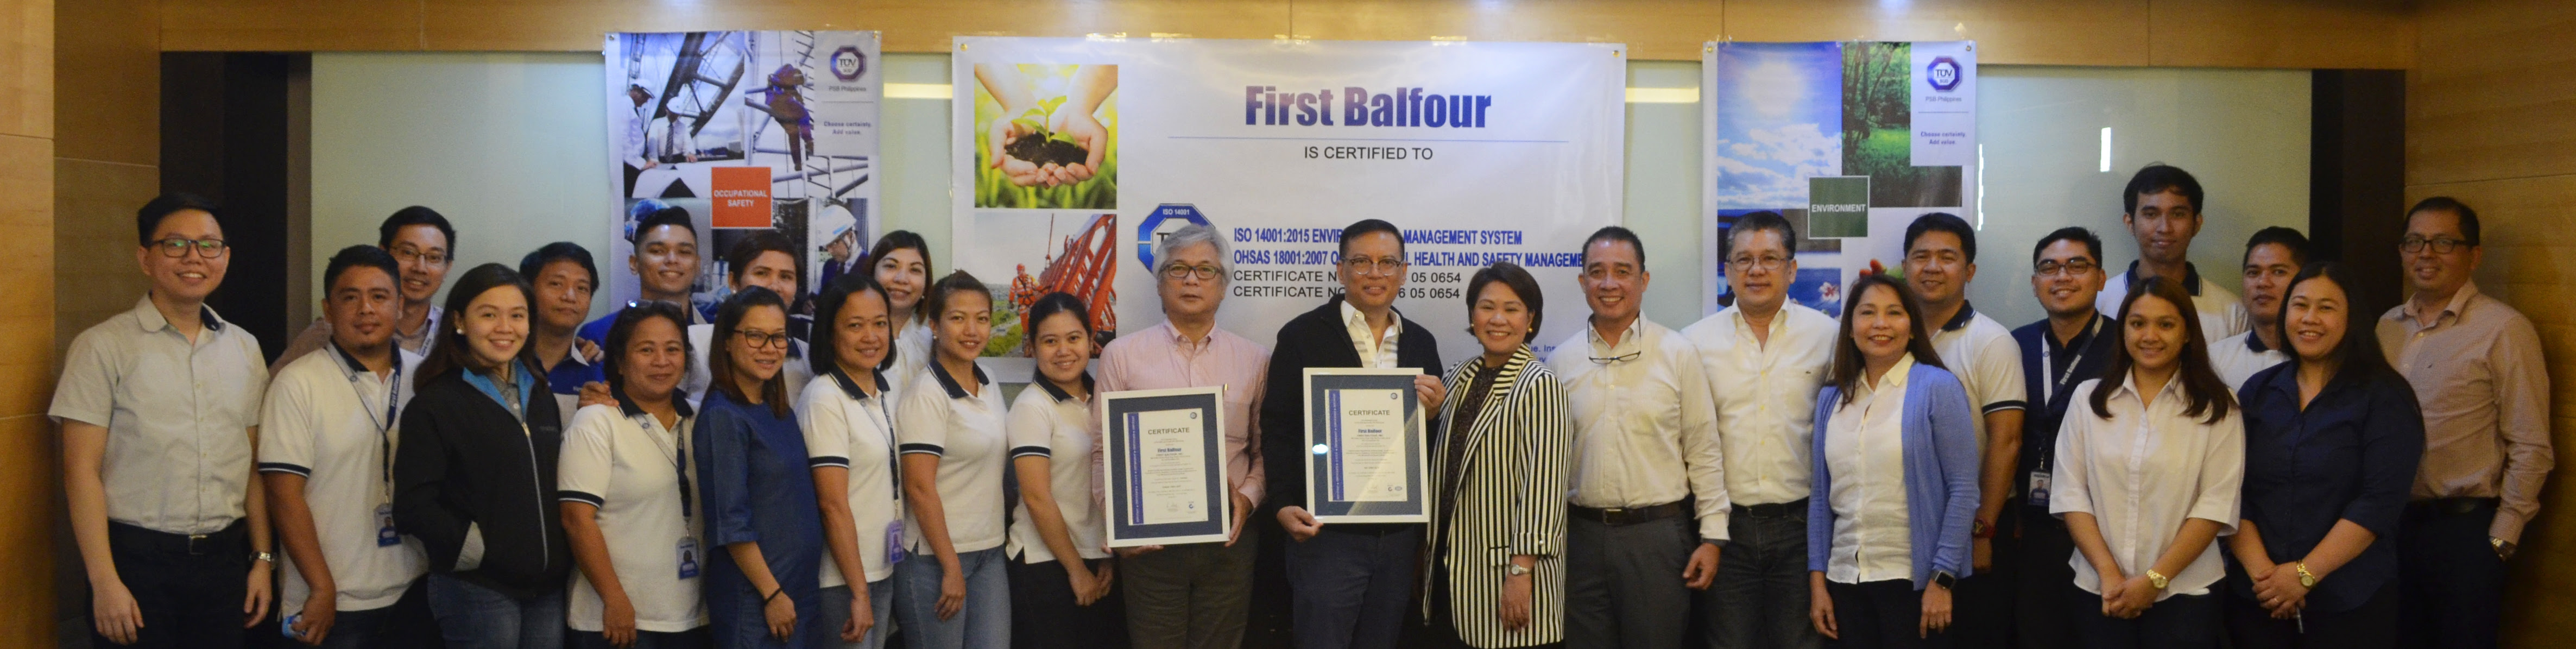 First Balfour receives ISO 14001, OHSAS 18001 certificates from TÜV SÜD